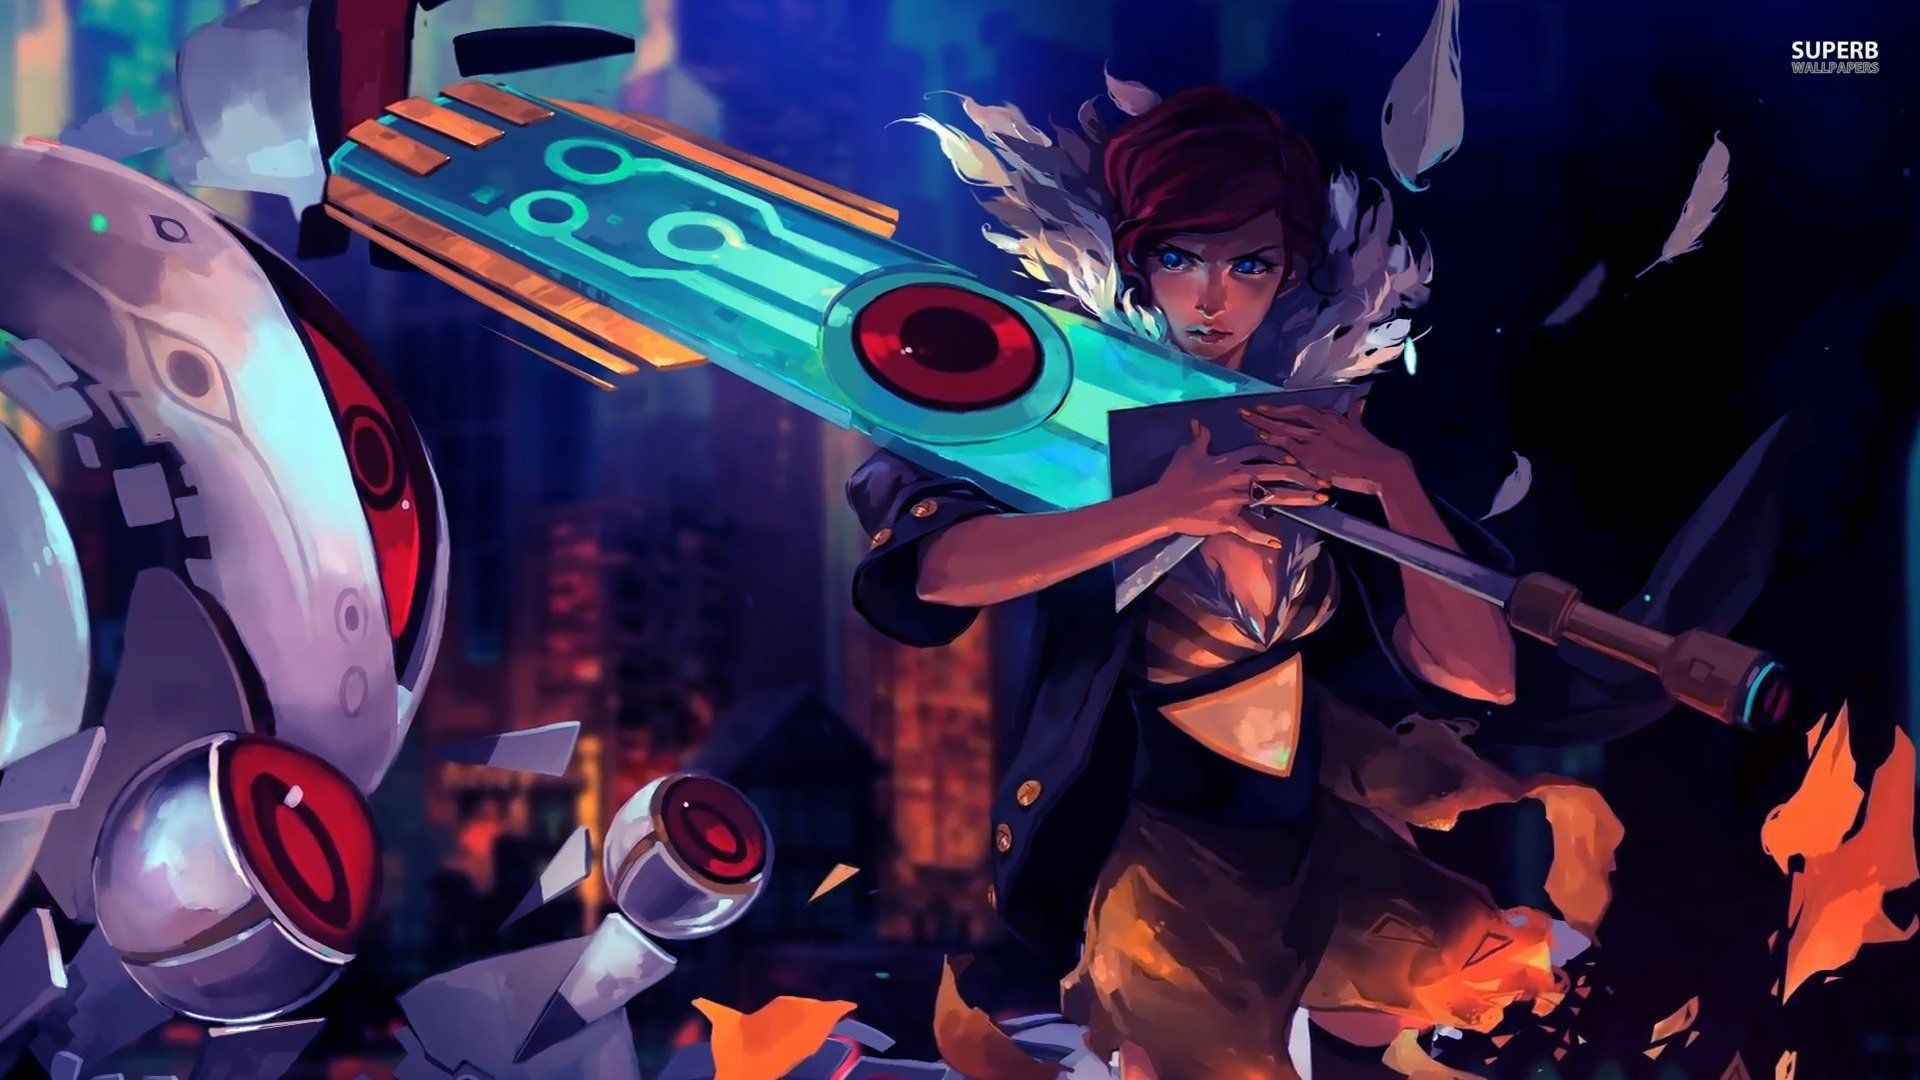 Transistor Red Anime Gaming Wallpapers Free Anime Gamers anime hd wallpaper